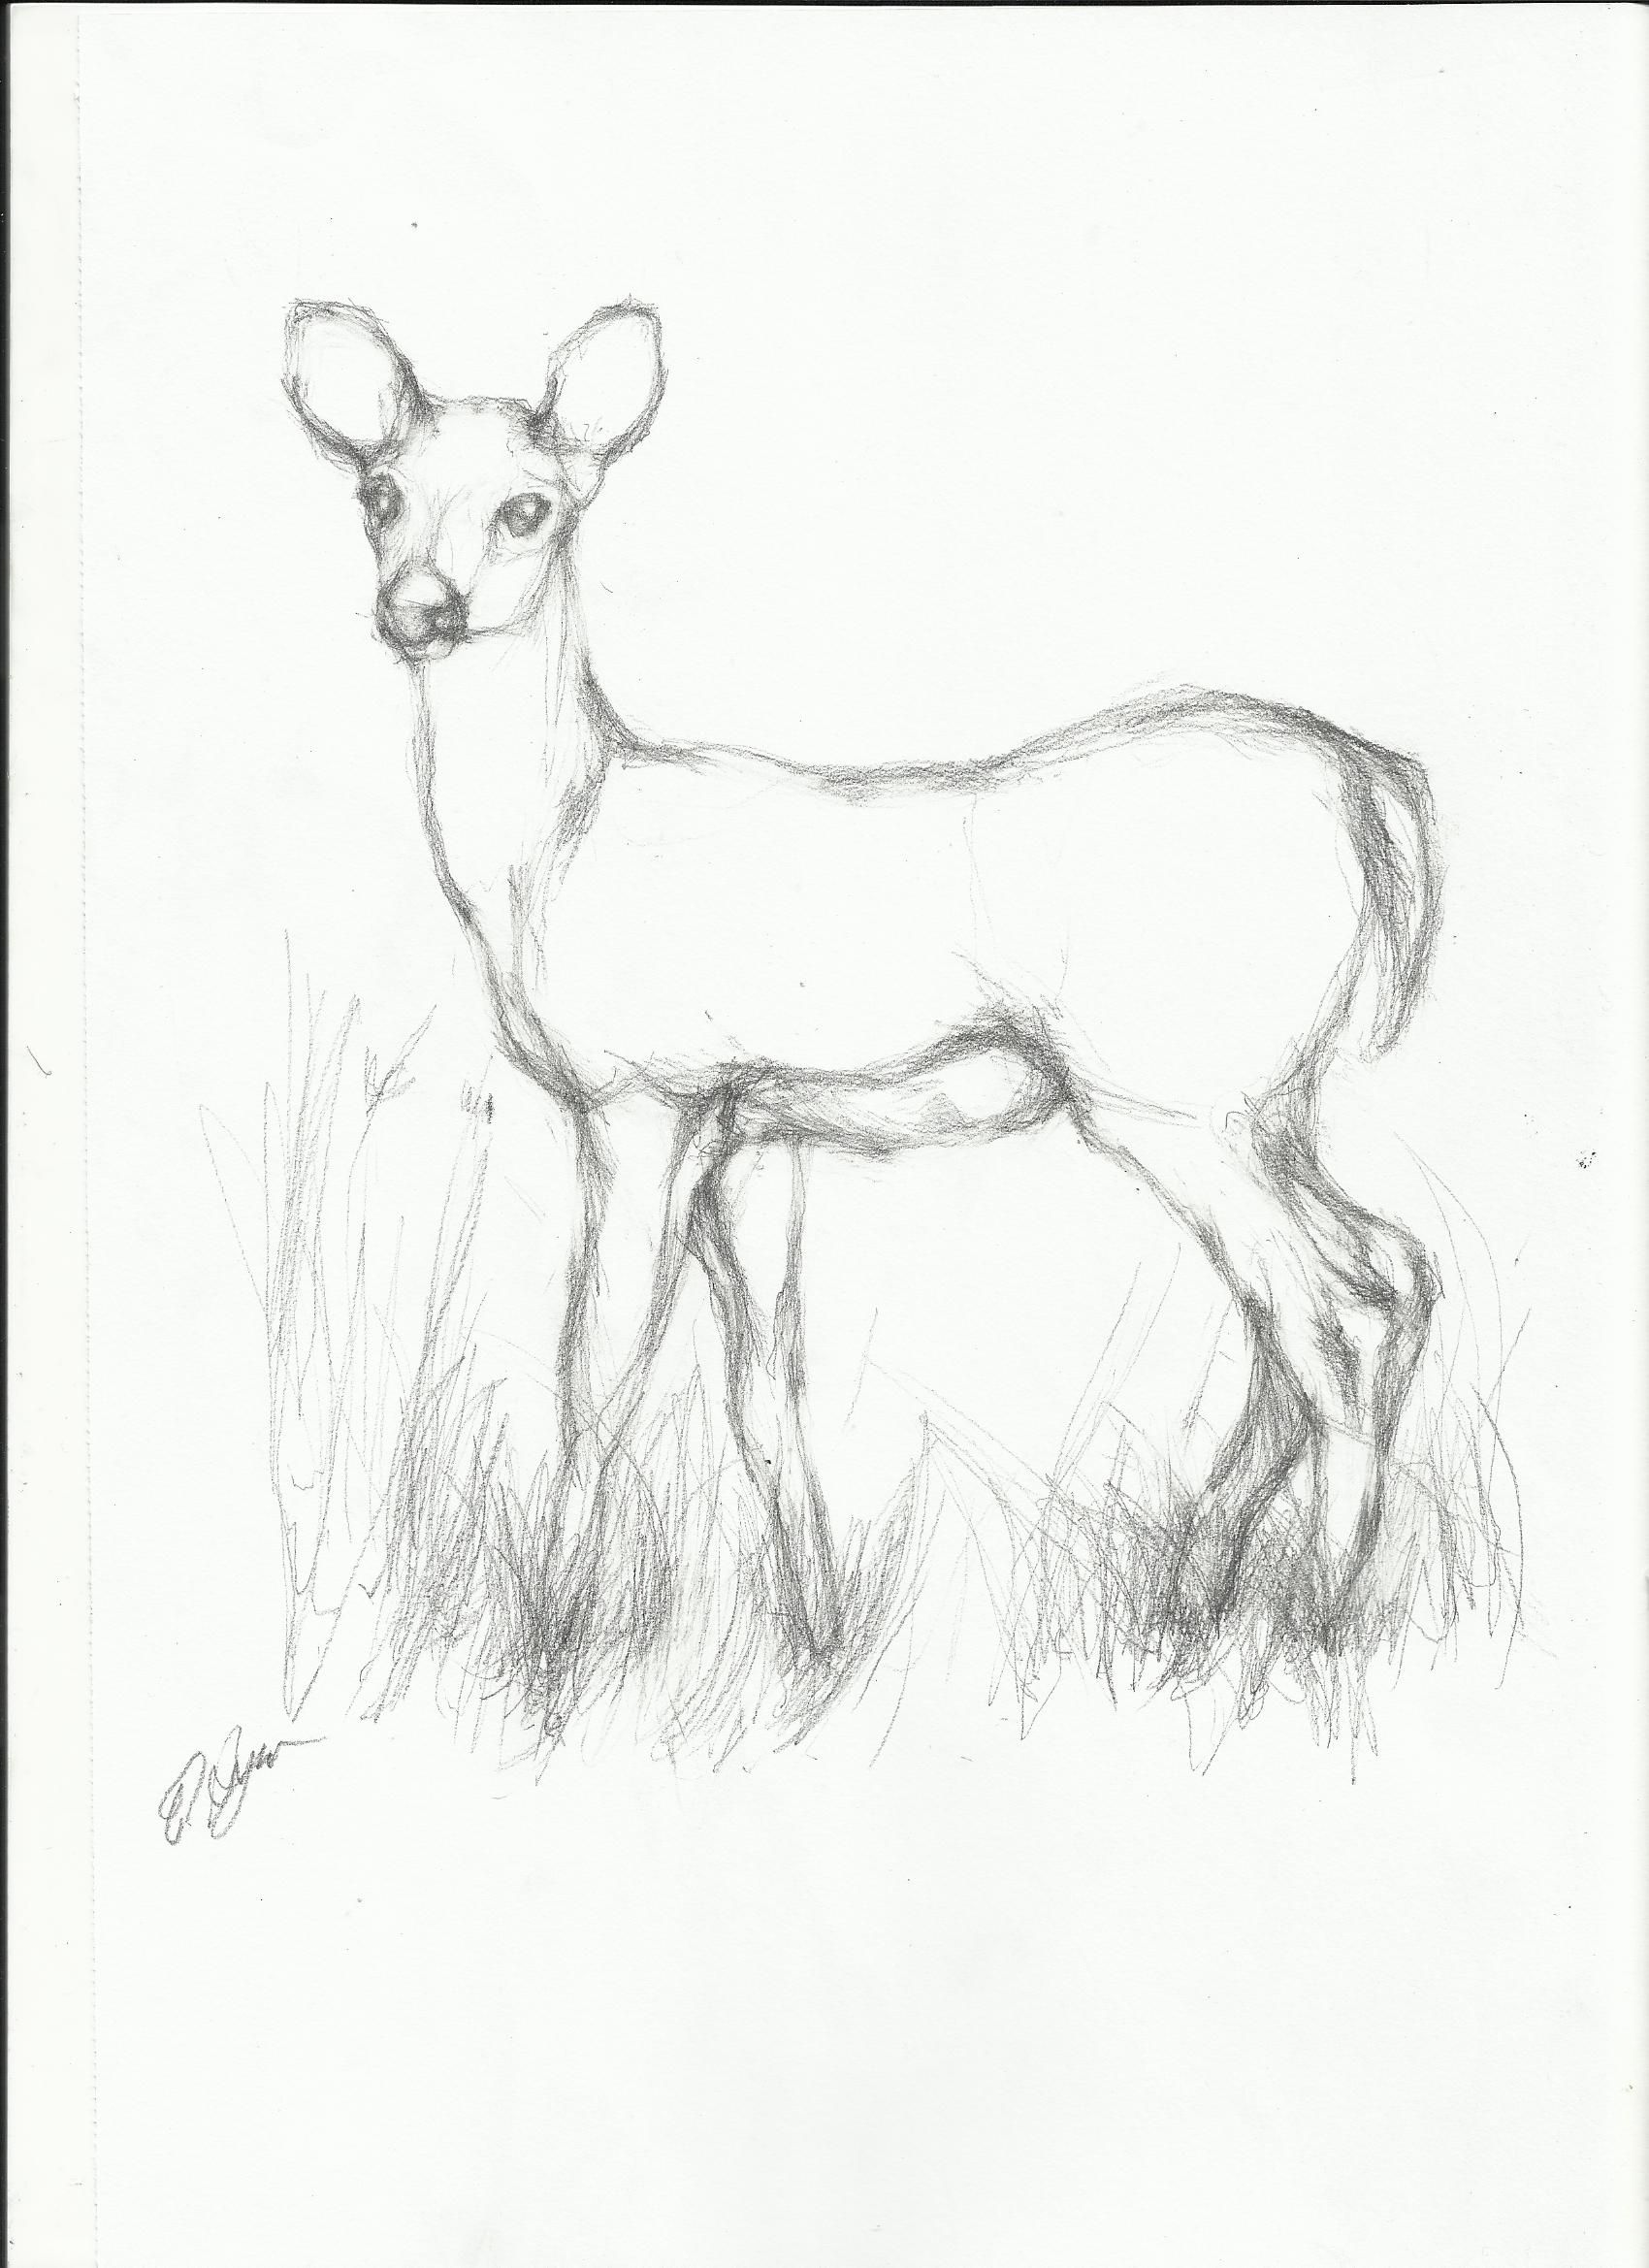 Line Art Jungle Animals : Simple line drawings of deer google search charcoal